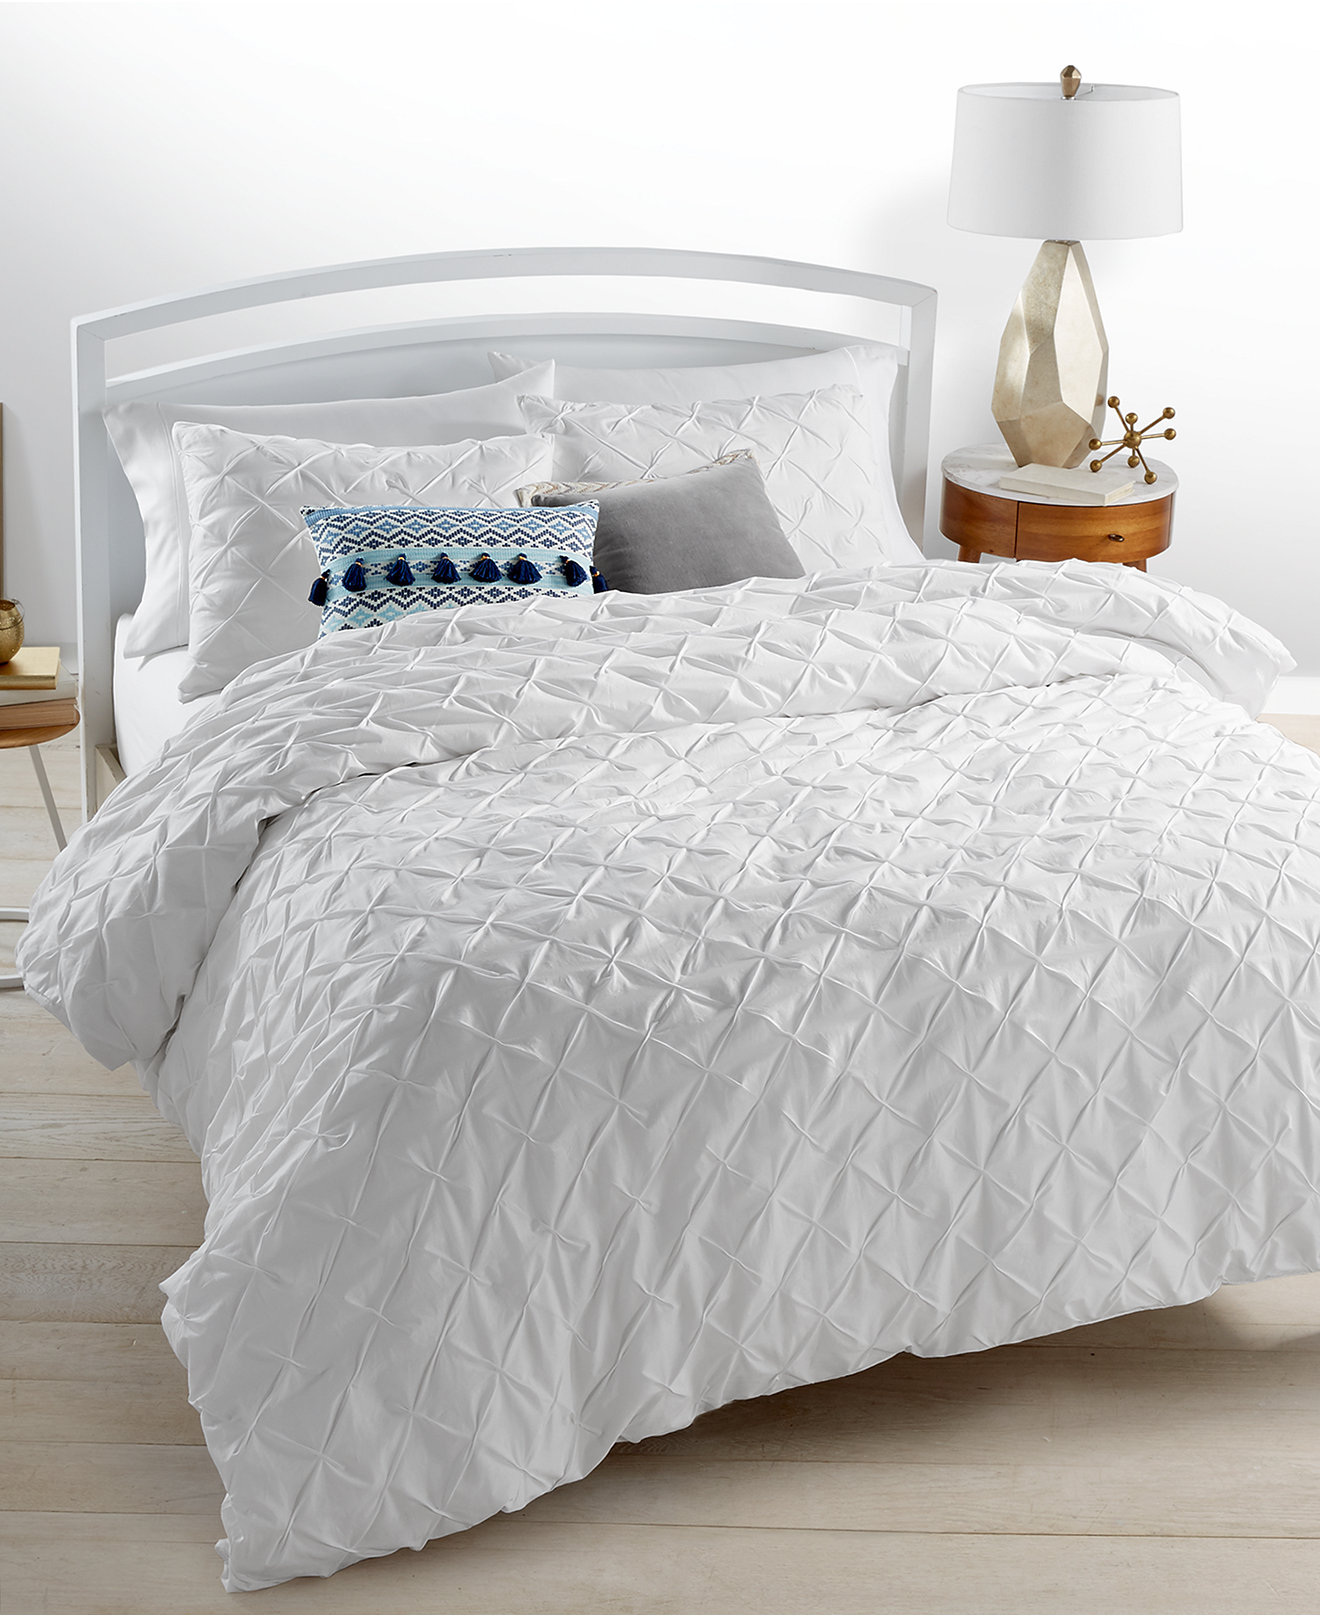 martha stewart bedding and bath collection  macy's - whim by martha stewart collection you compleat me white bedding collectioncreated for macy's